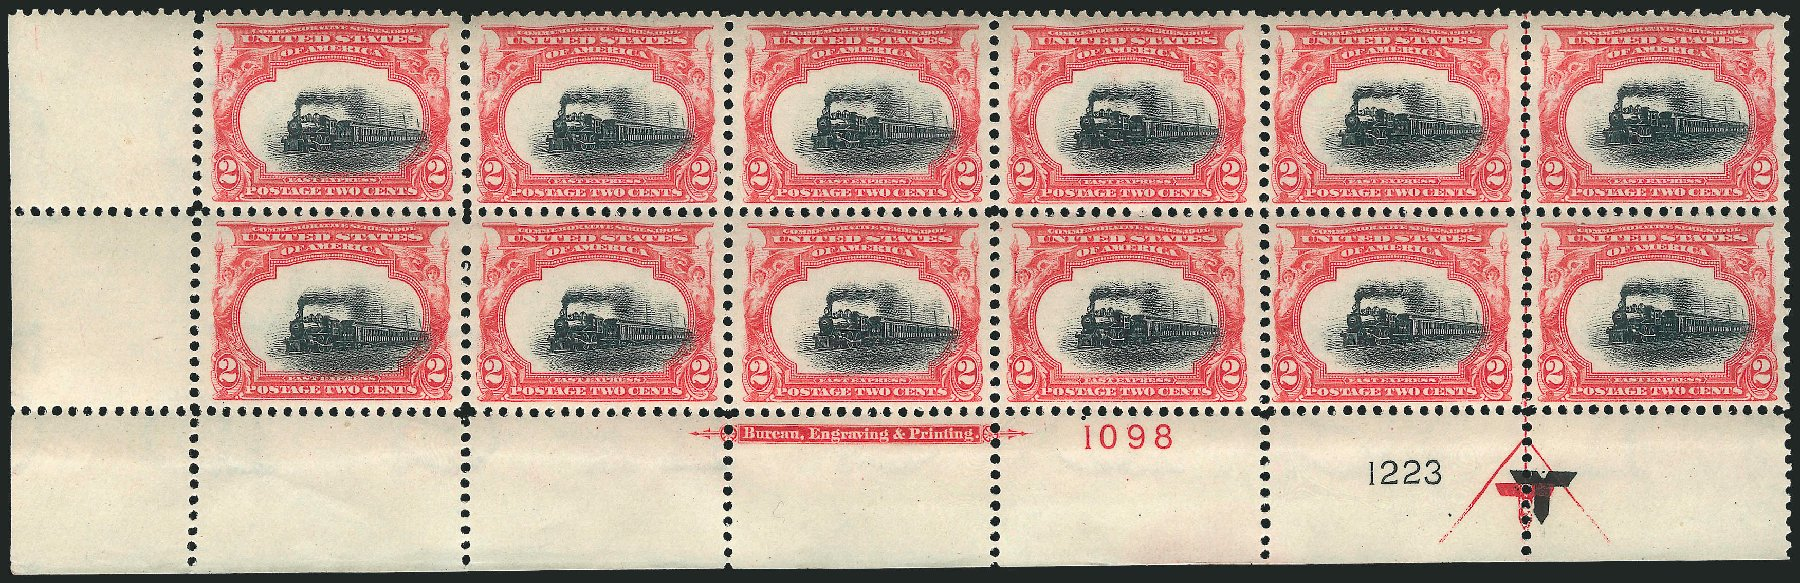 US Stamp Price Scott Catalog # 295: 1901 2c Pan American Exposition. Robert Siegel Auction Galleries, Feb 2015, Sale 1092, Lot 1250